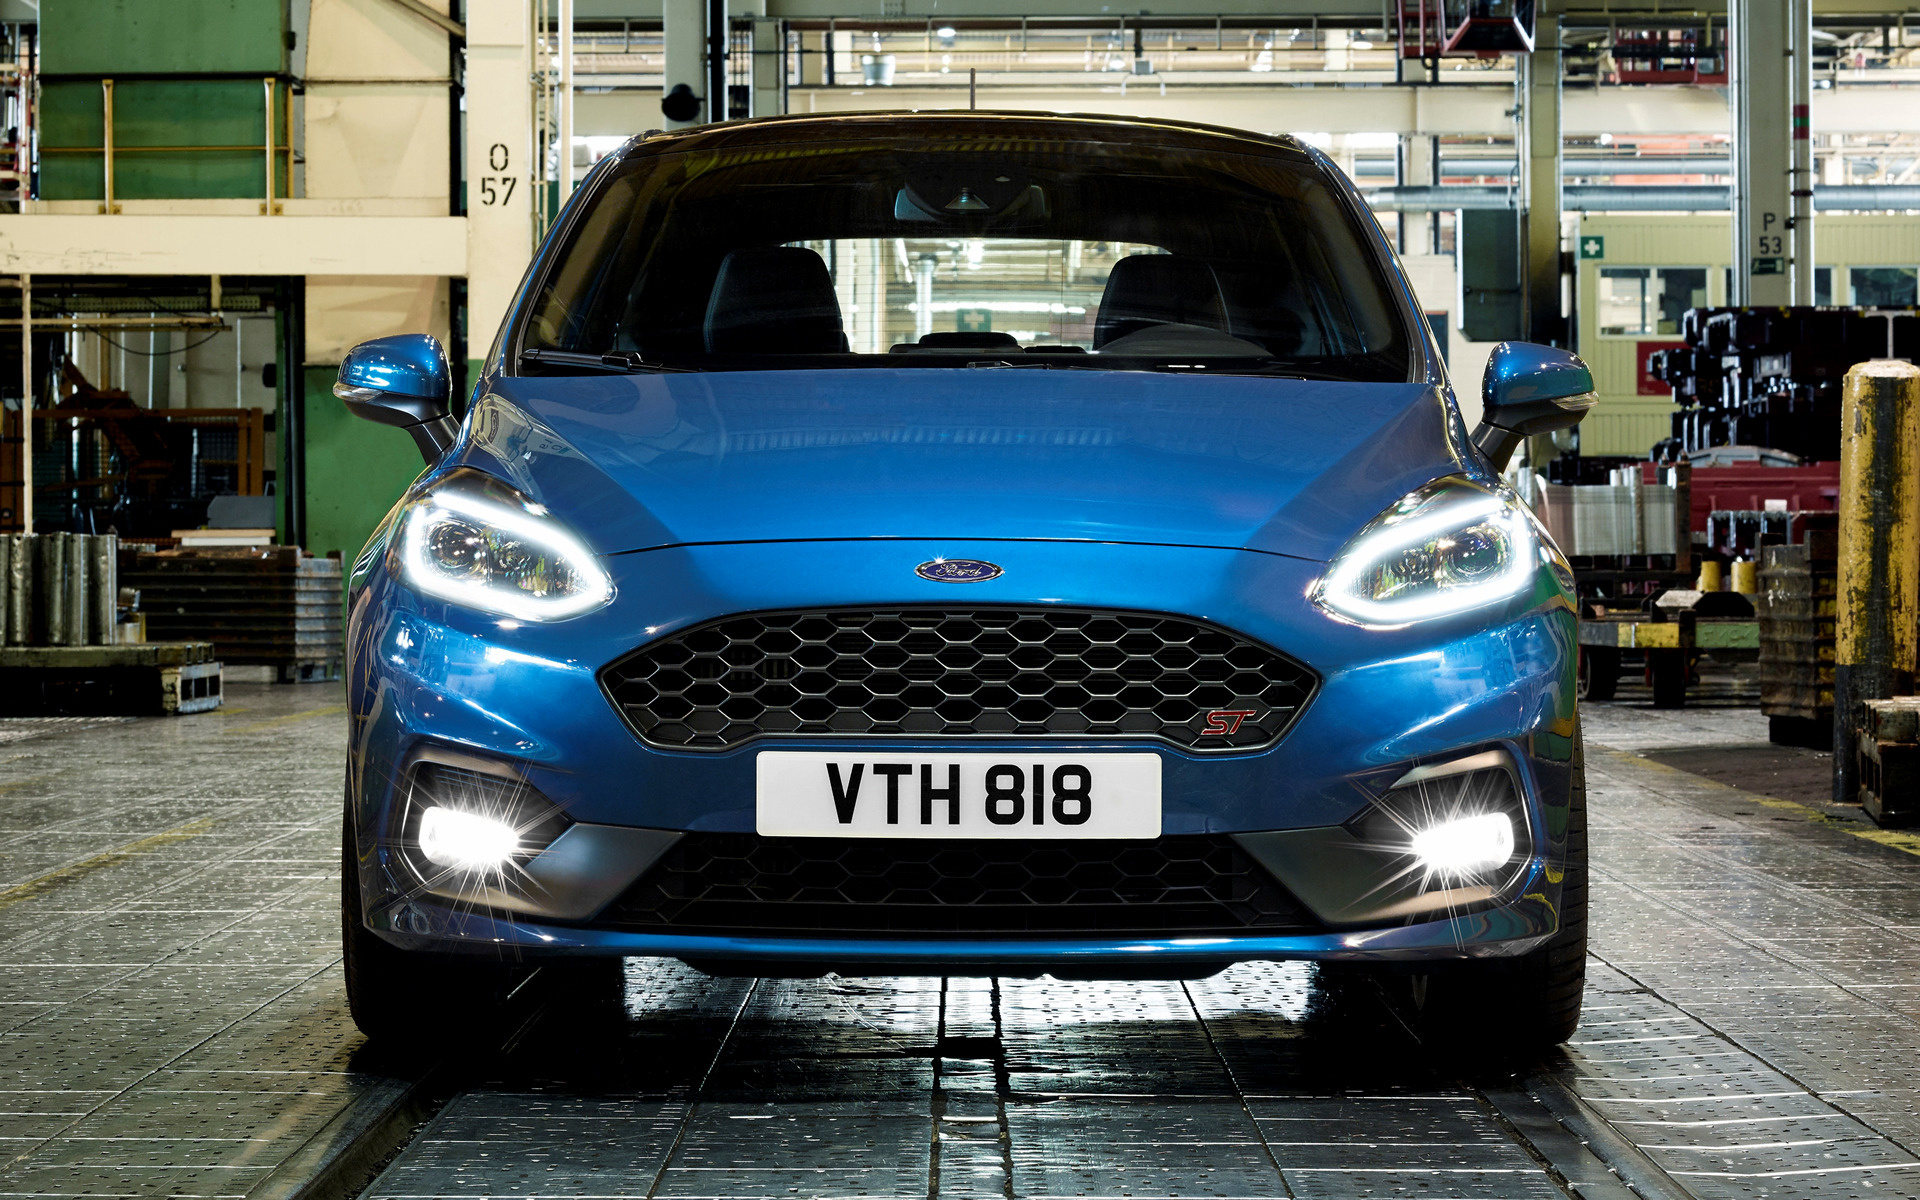 2018 Ford Fiesta St 3 Door Wallpapers And Hd Images Car Pixel